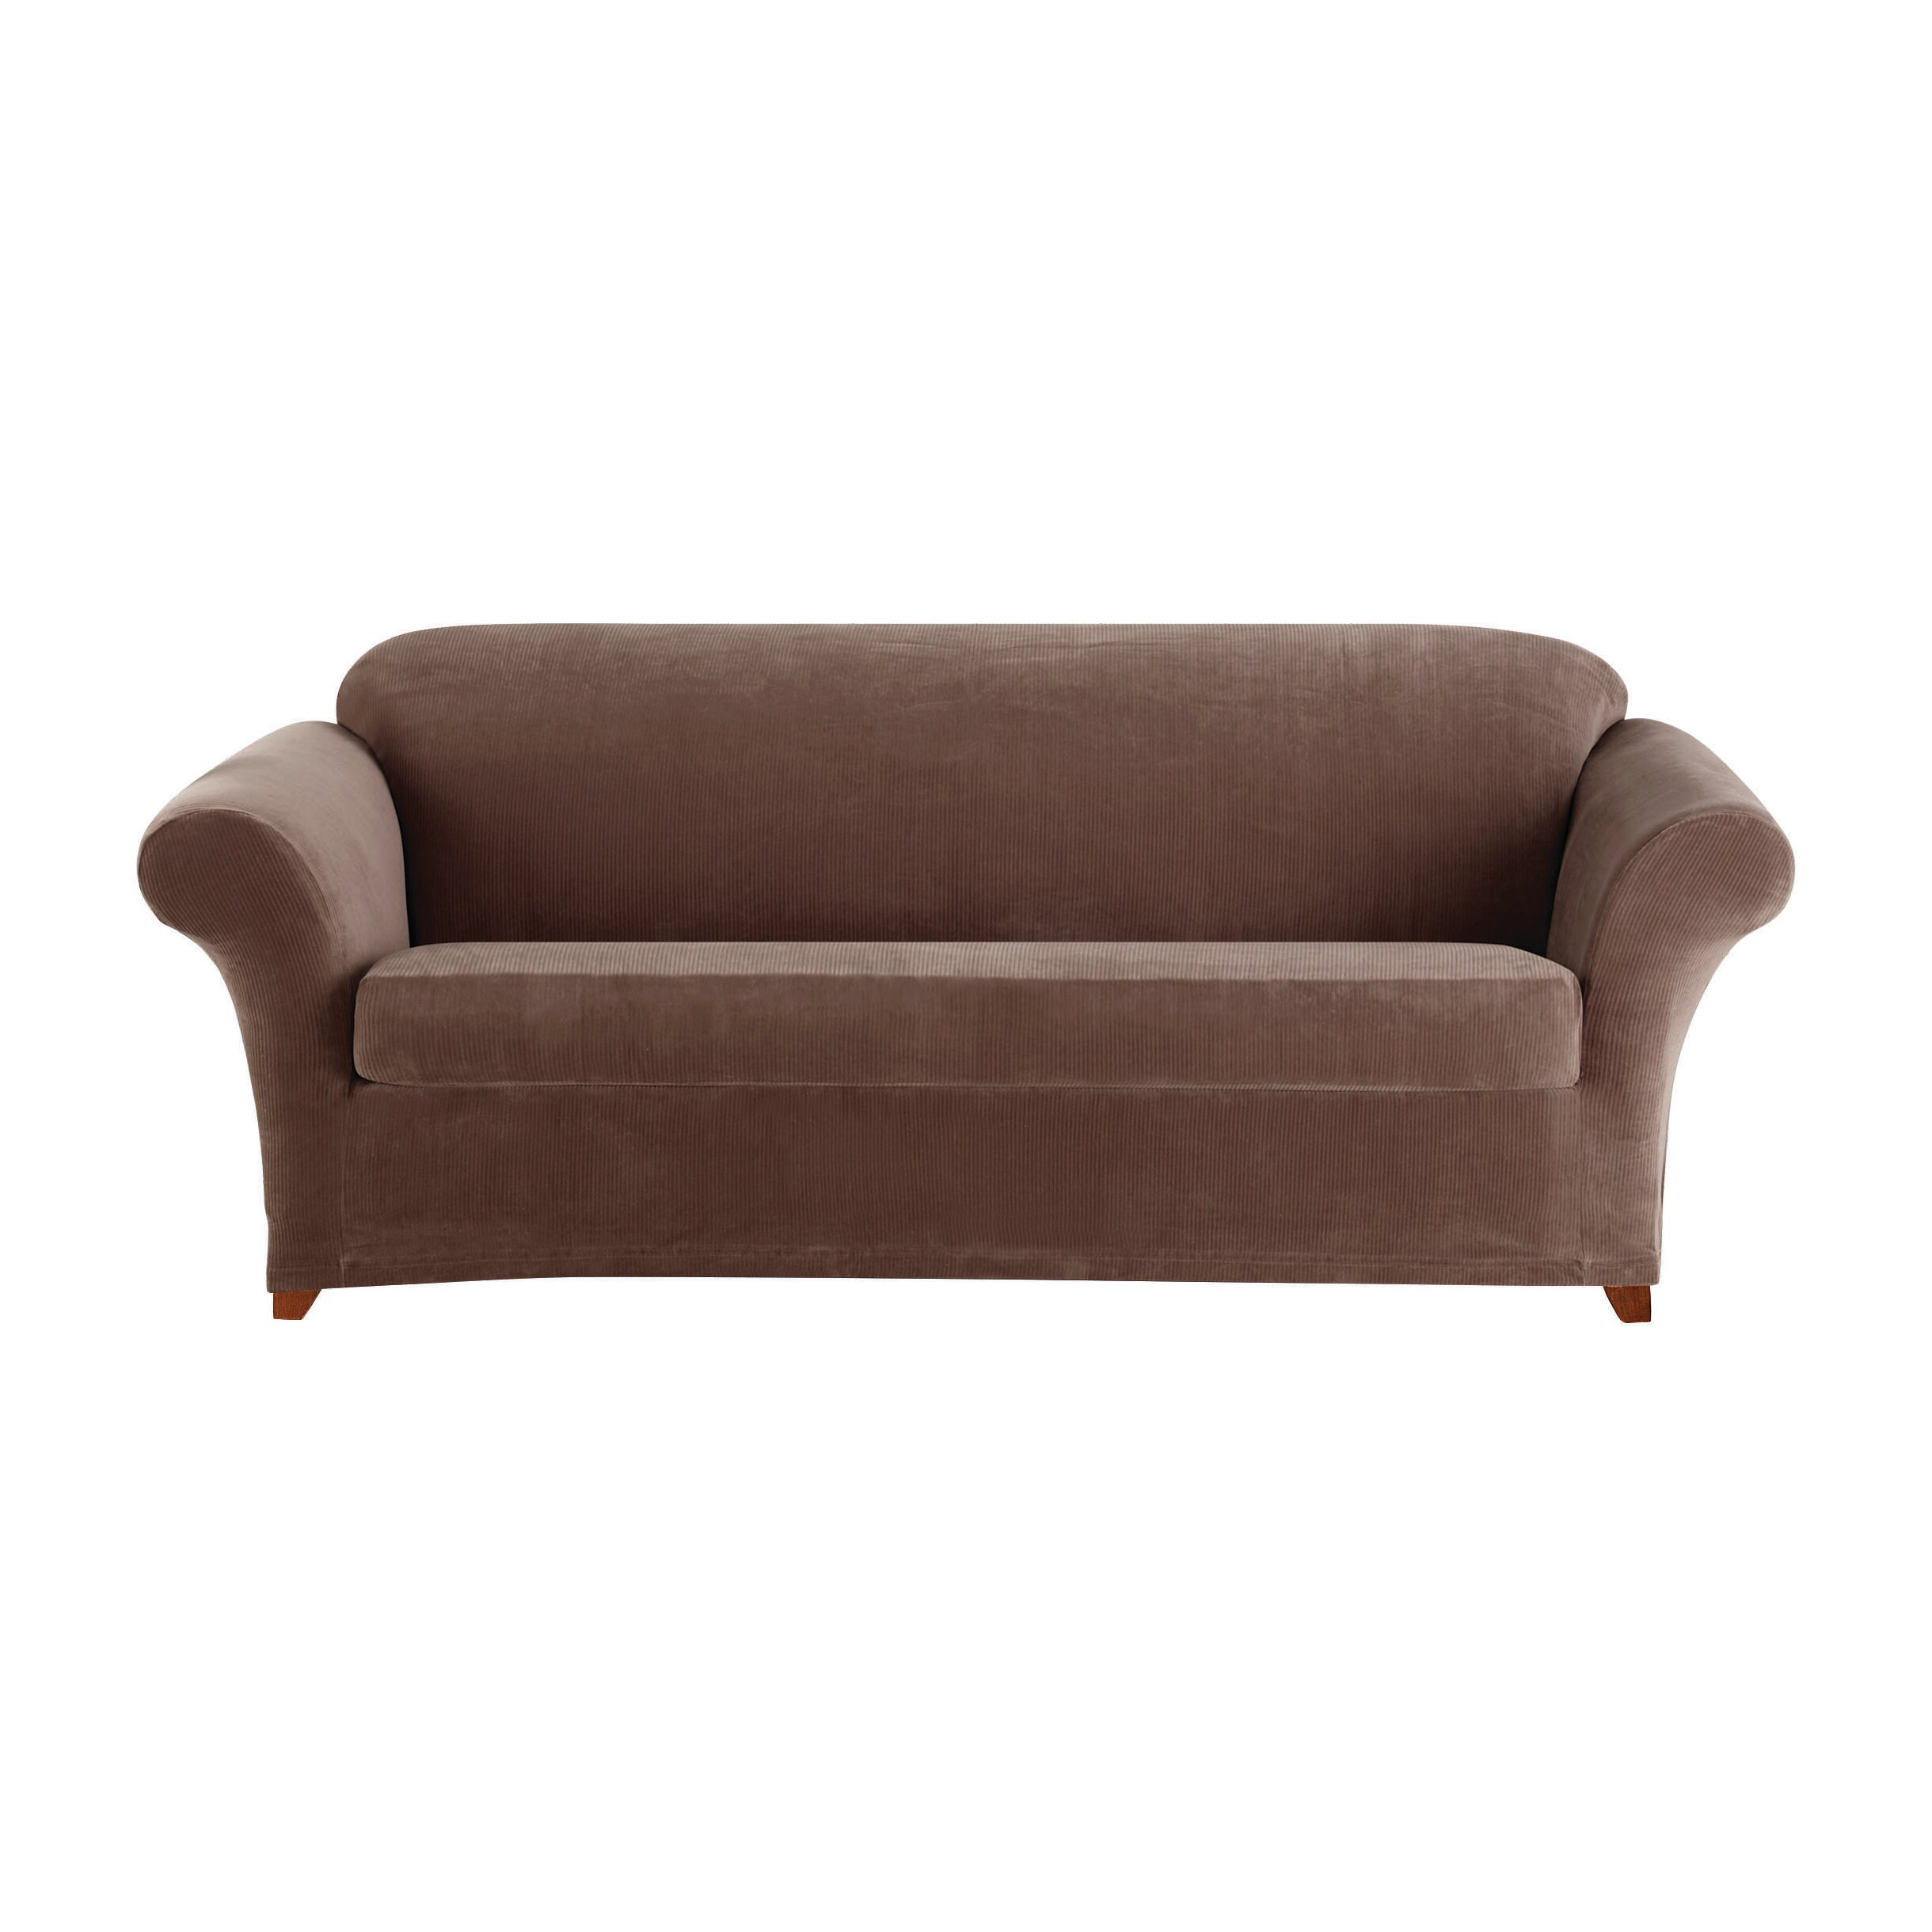 Buy Sure Fit 174 Stretch Pearson 2 Sofa Slipcover In From Bed Bath Beyond